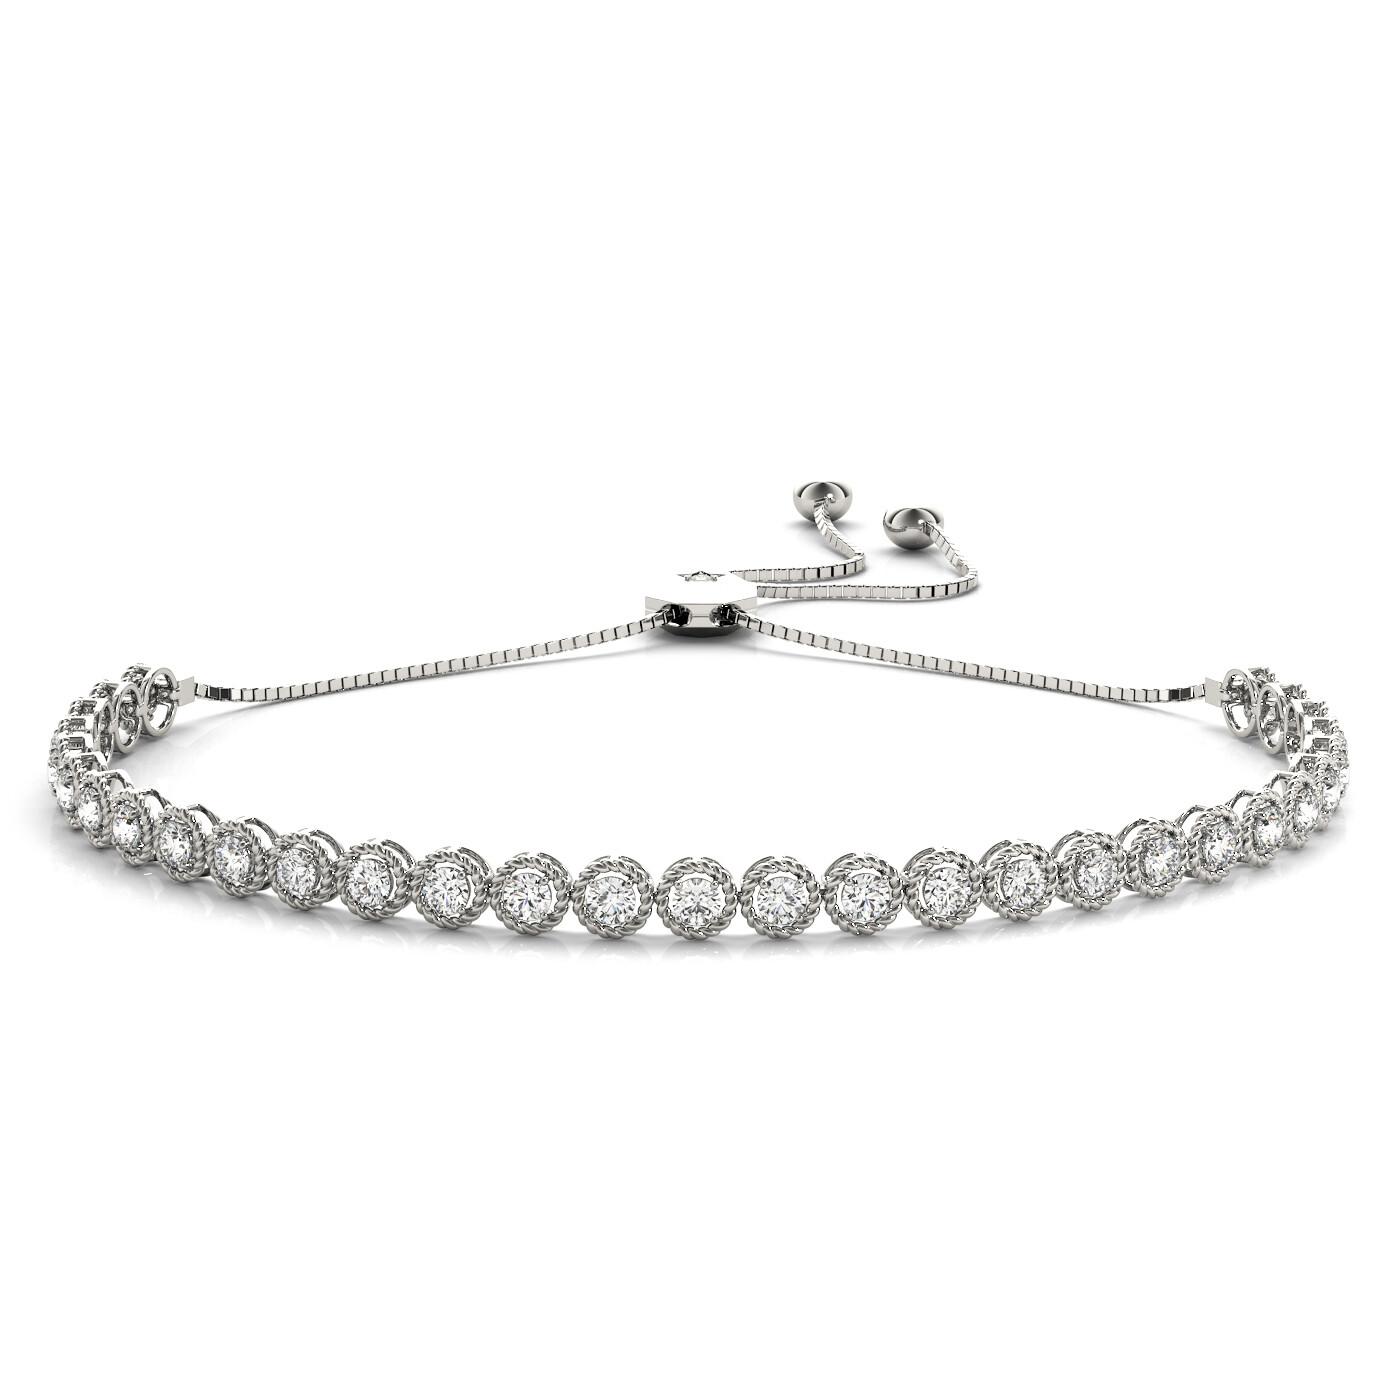 14K Diamond Milgrain Adjustable Bracelet,Diamond Bolo Bracelet